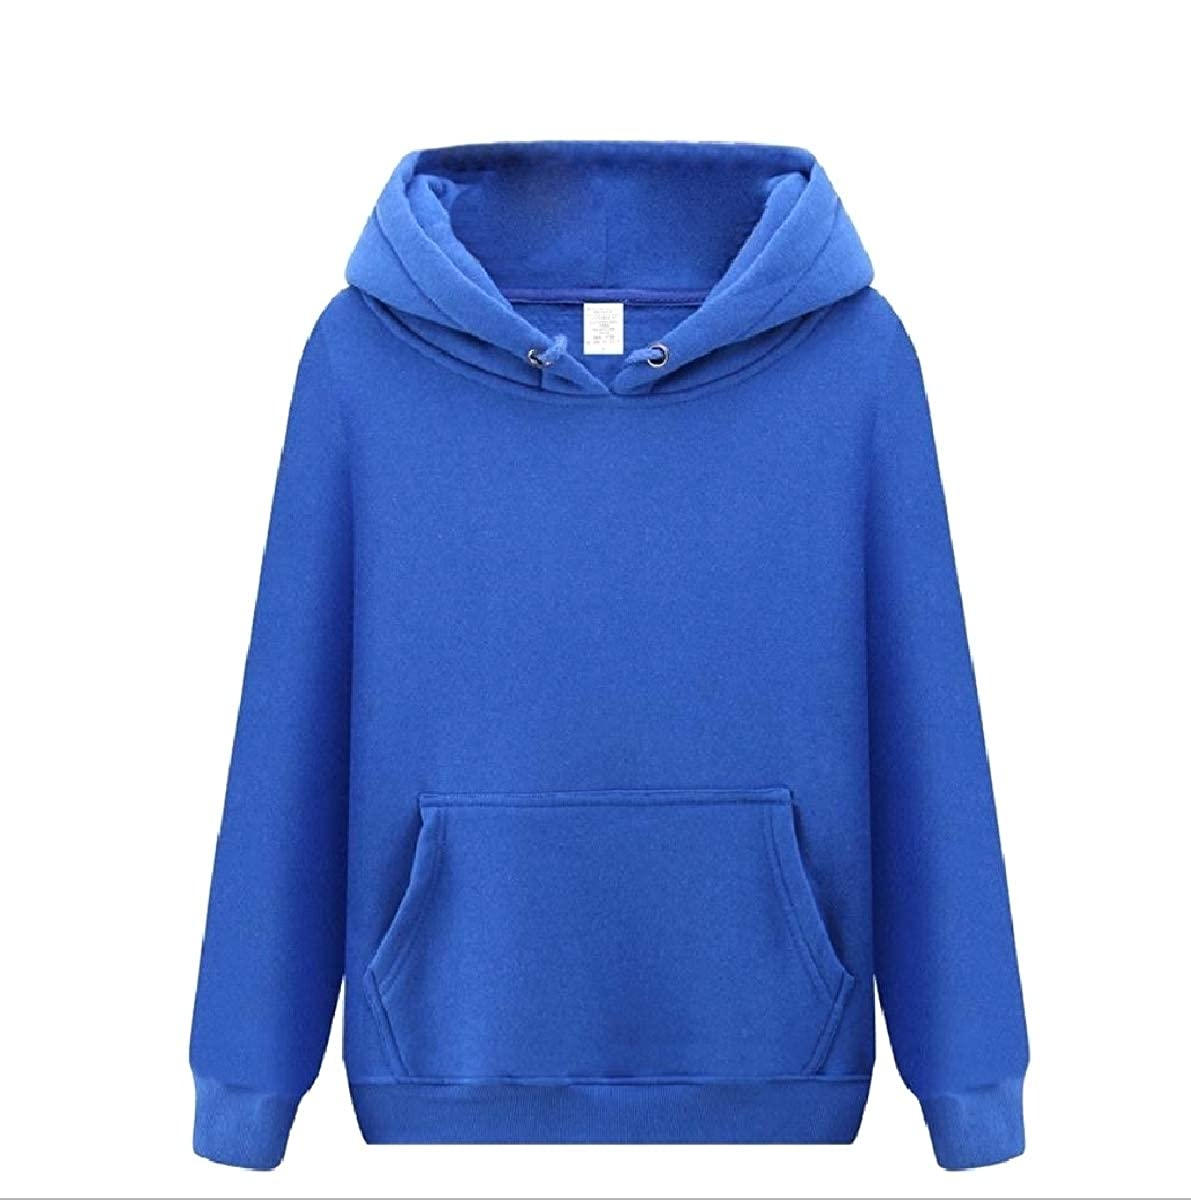 YUNY Mens with Pockets Pea Coat Solid Color Thickened Hoodies Sweater Sapphire Blue XL